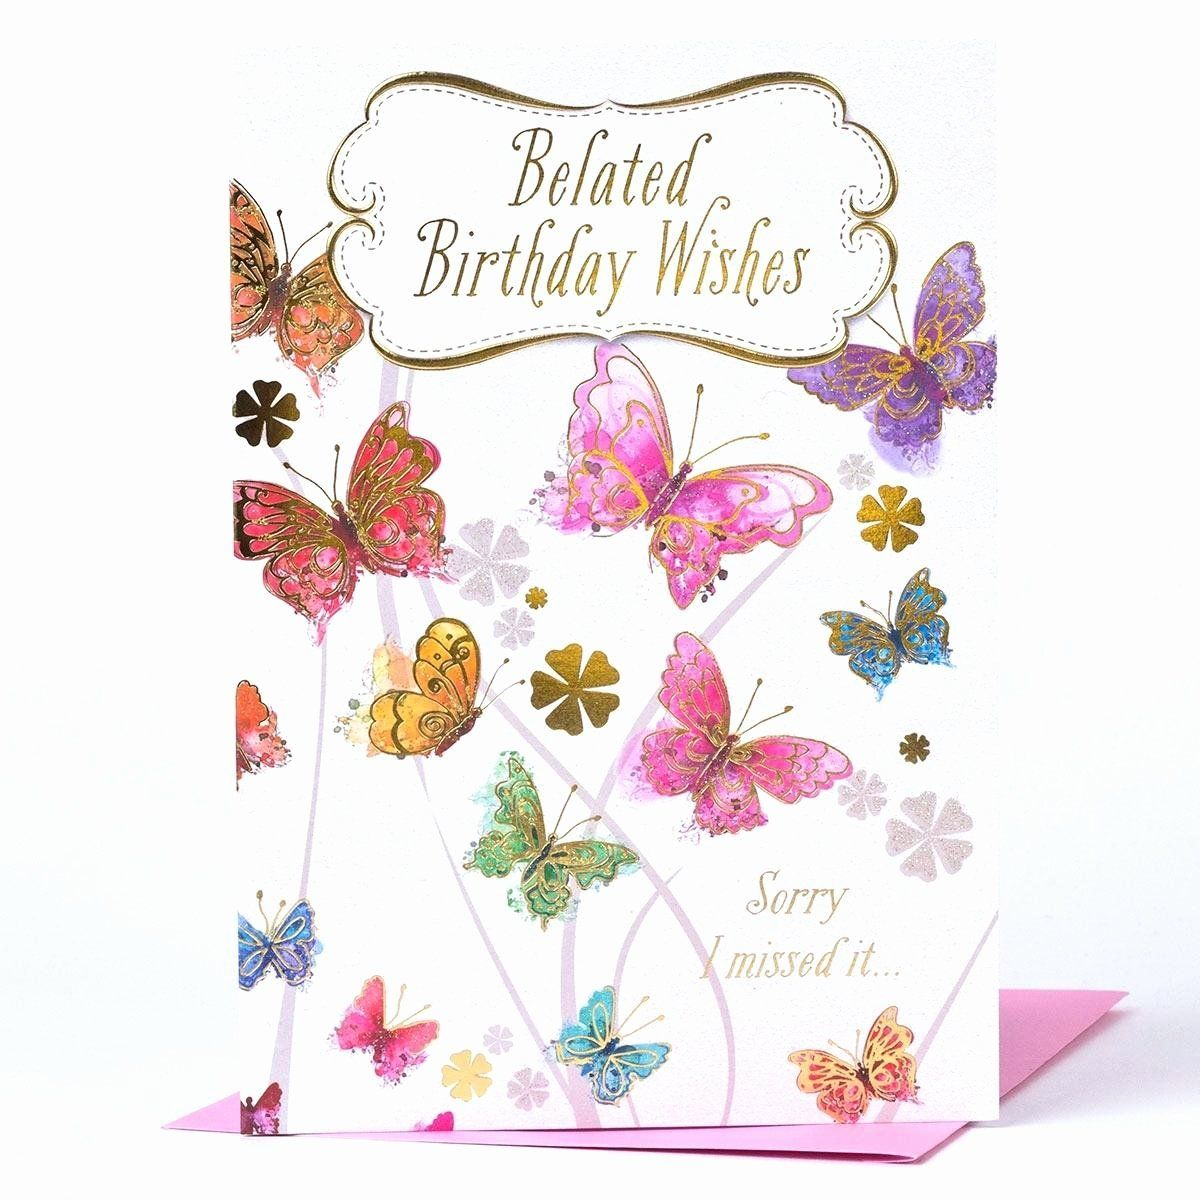 Funny Belated Birthday Quotes in 2020 Belated birthday